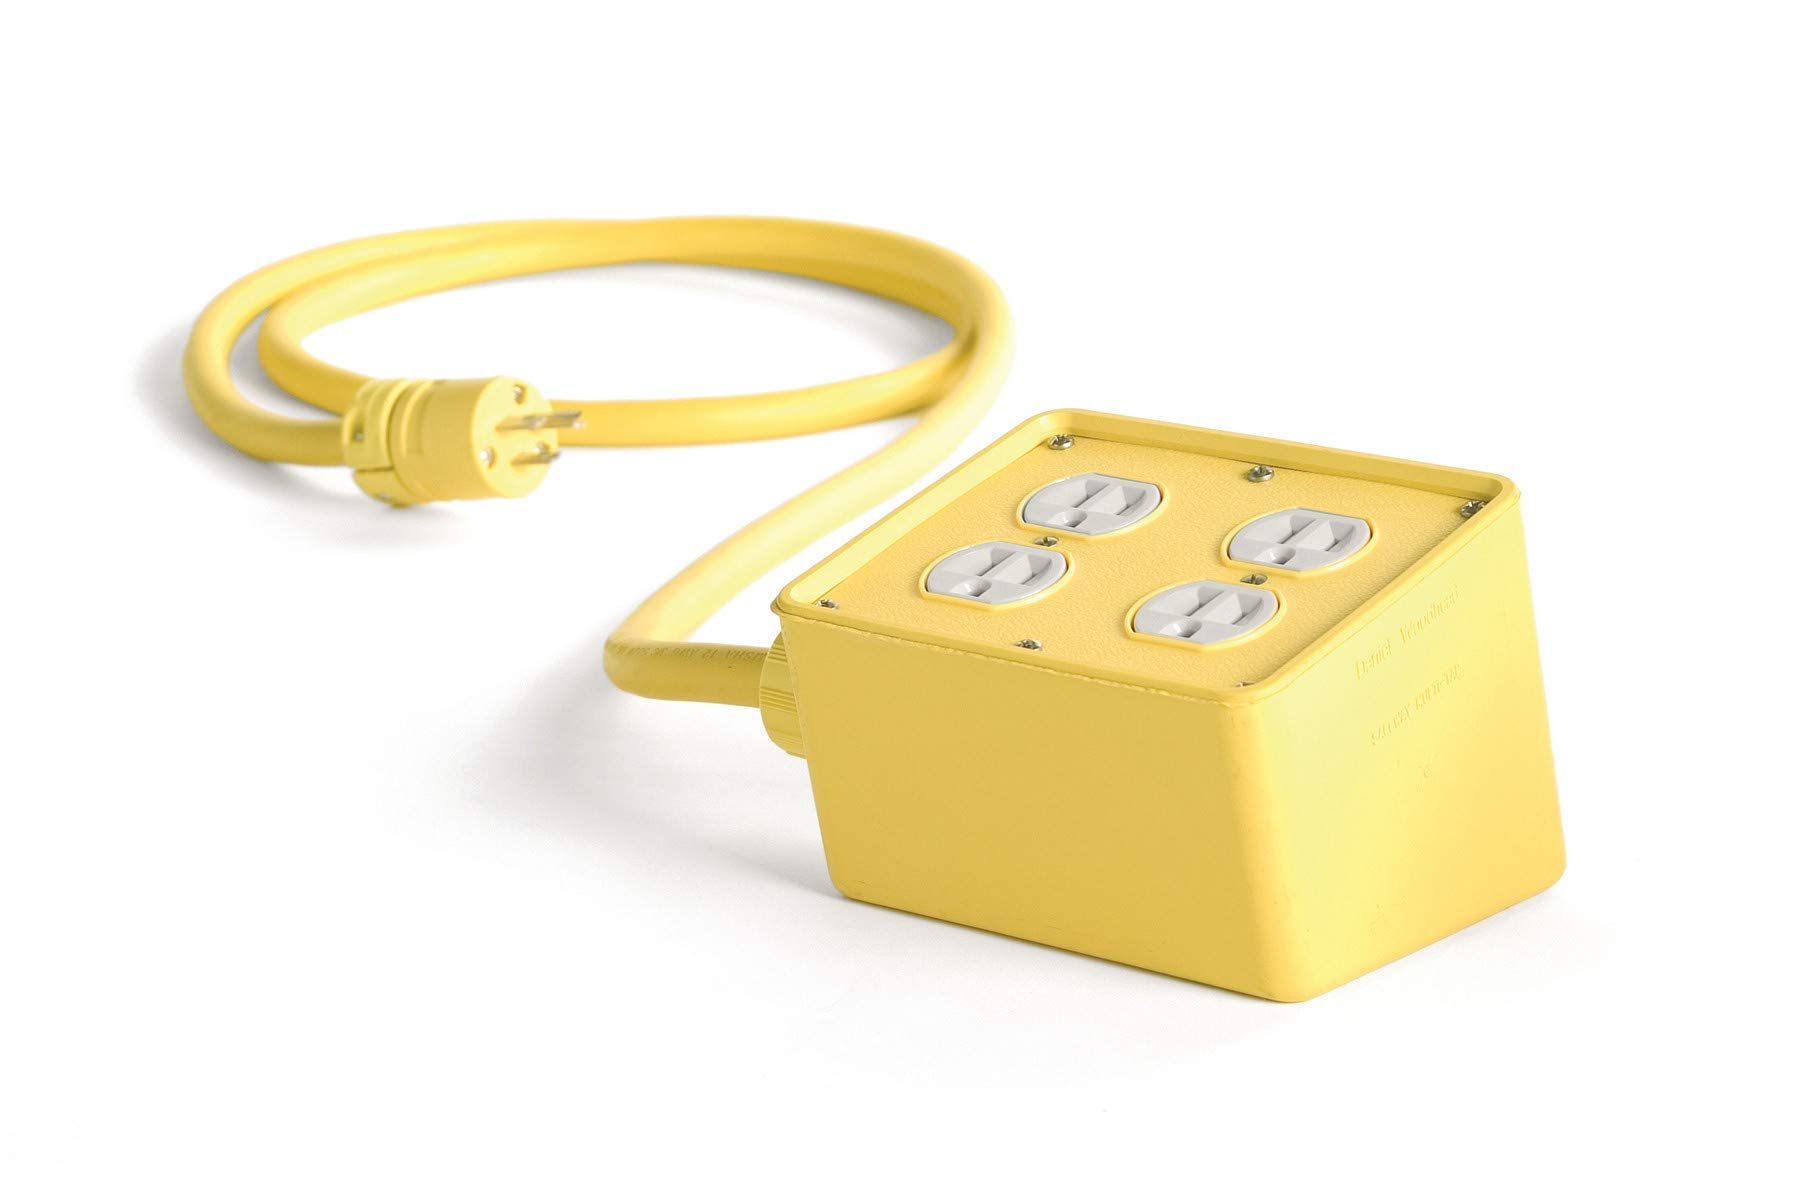 Woodhead 3330A123 Super-Safeway Angled Outlet Box, NEMA 5-15 Configuration, 12/3 SOOW Cord Type, 25ft Cord Length